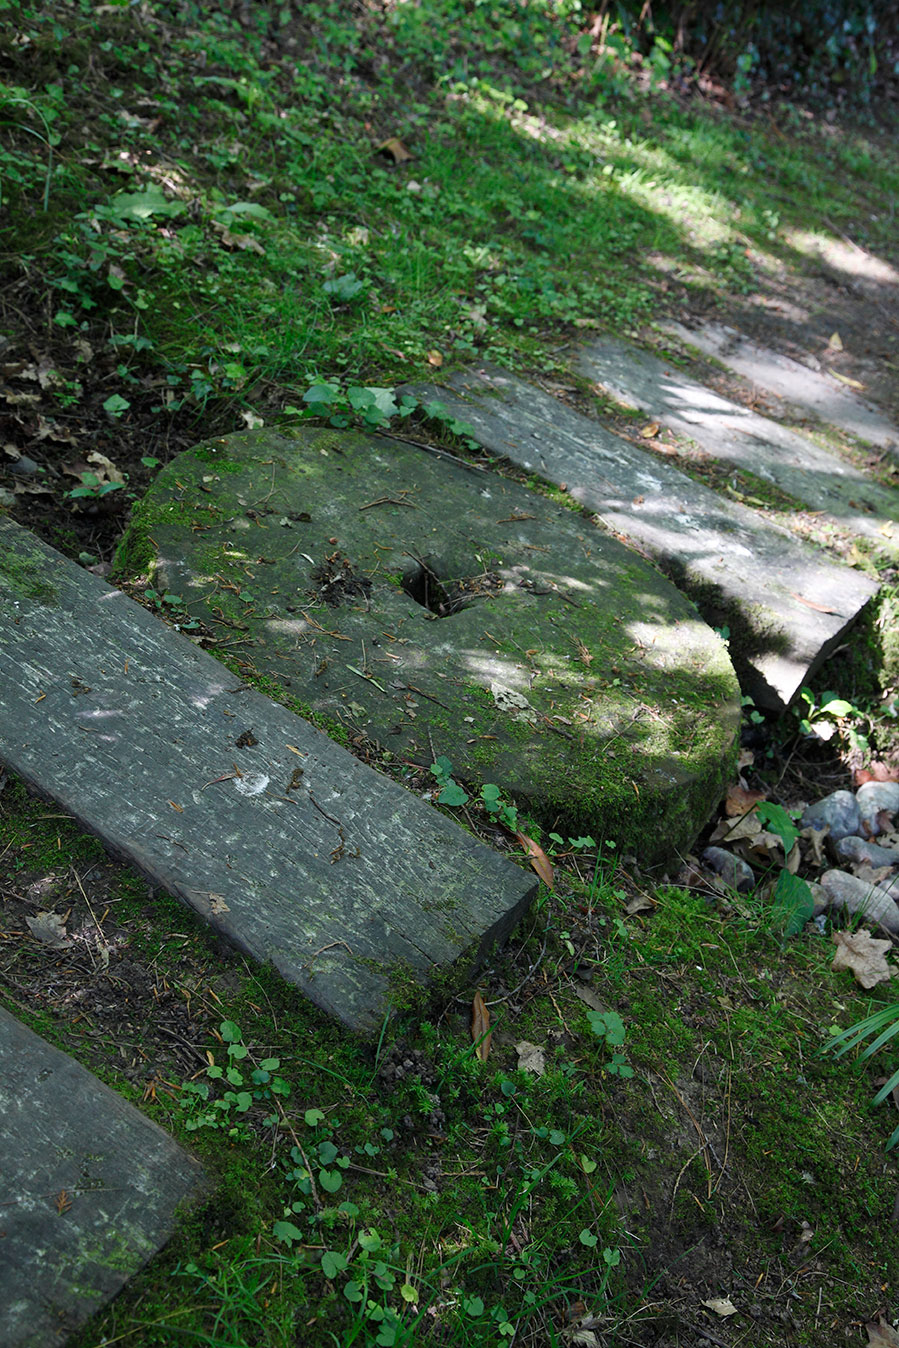 An old mill stone bought by mother, forms a stepping stone across the stream.